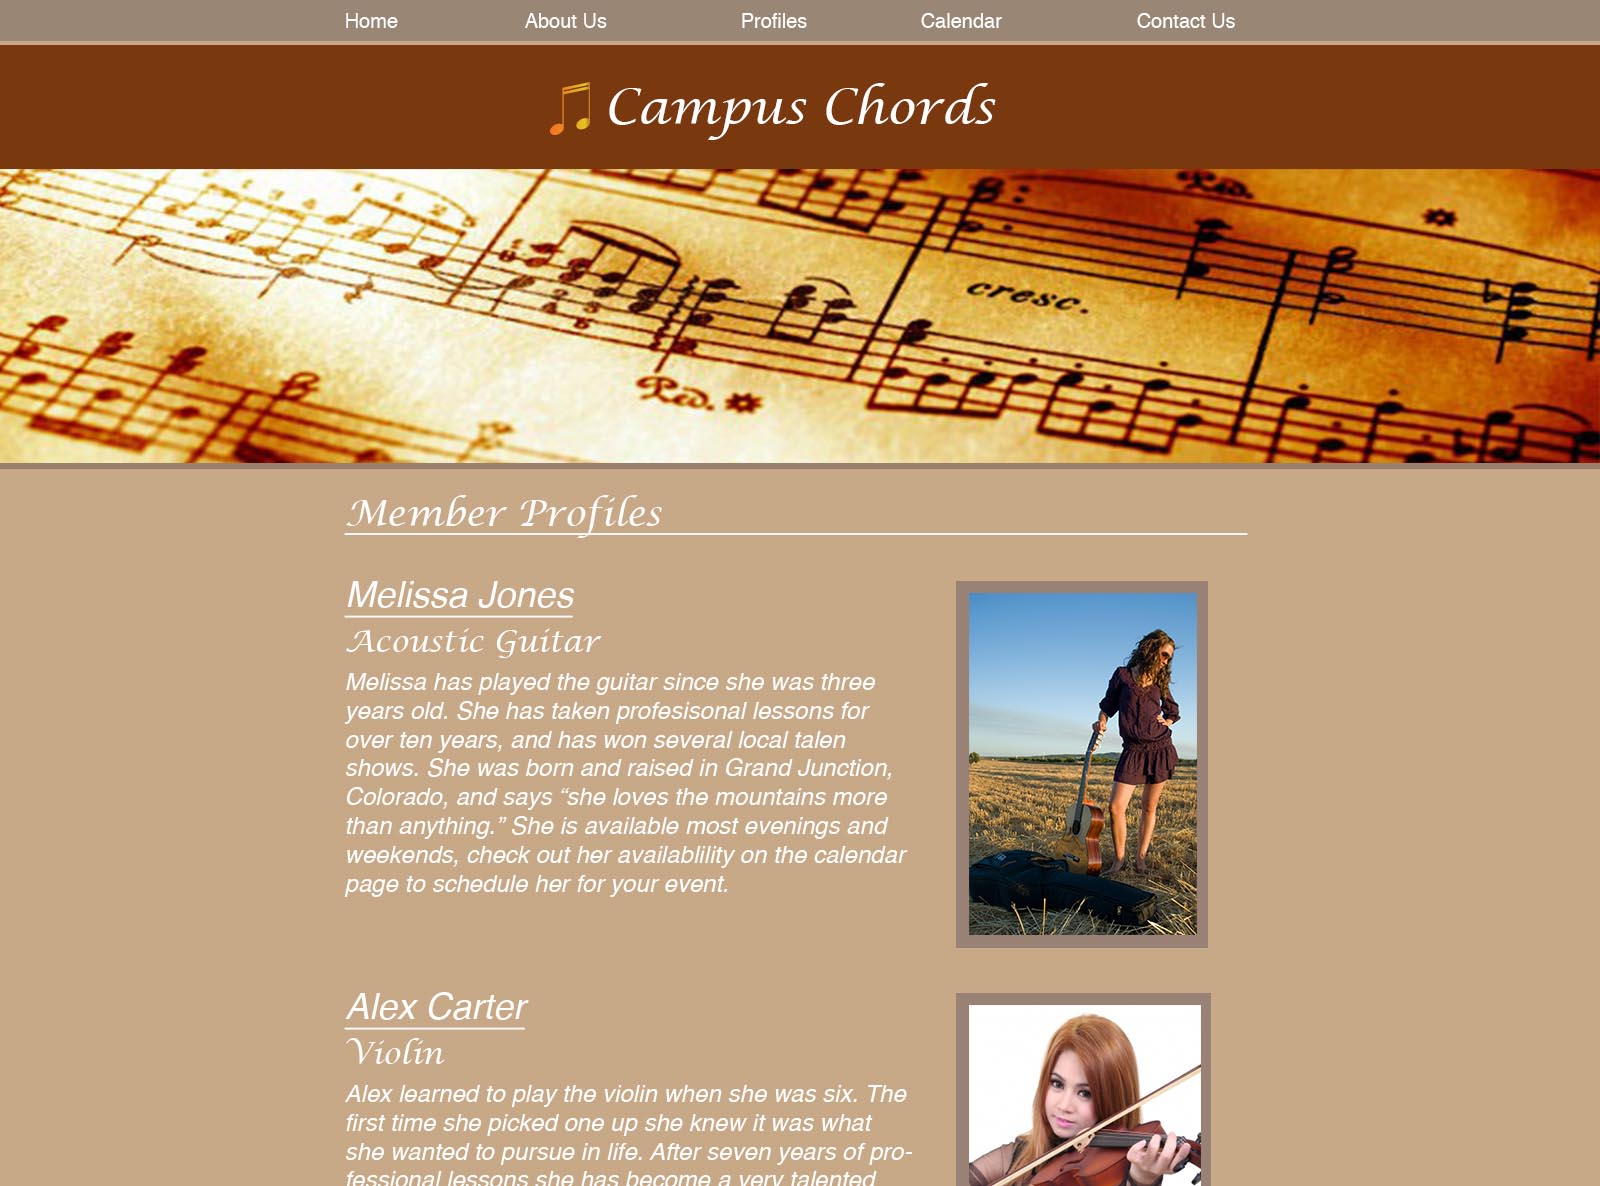 Campus Chords Profiles Sml